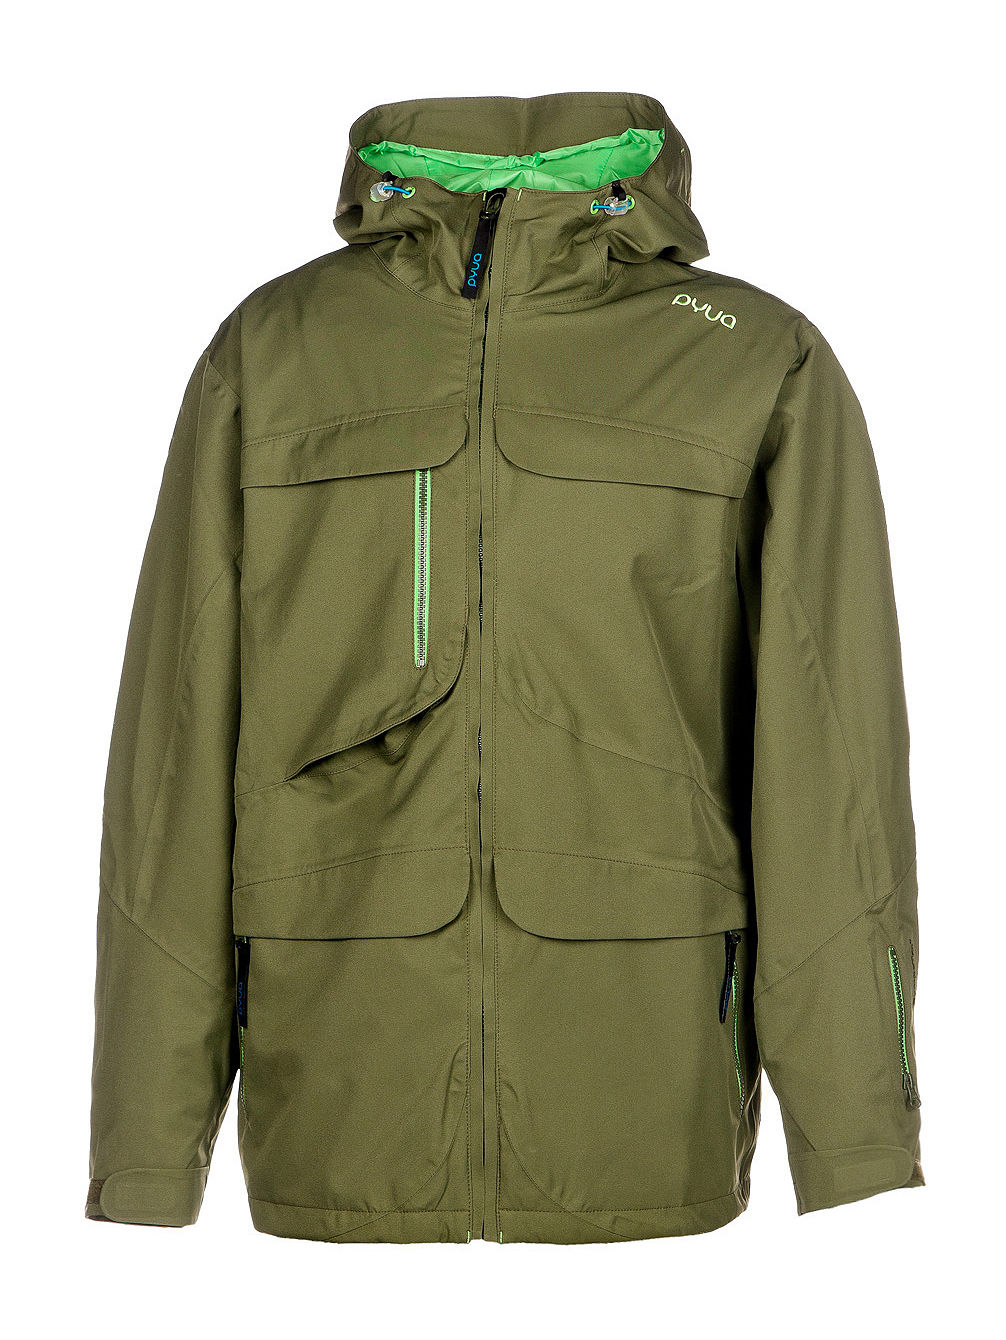 Whizz 3L Lined Jacket